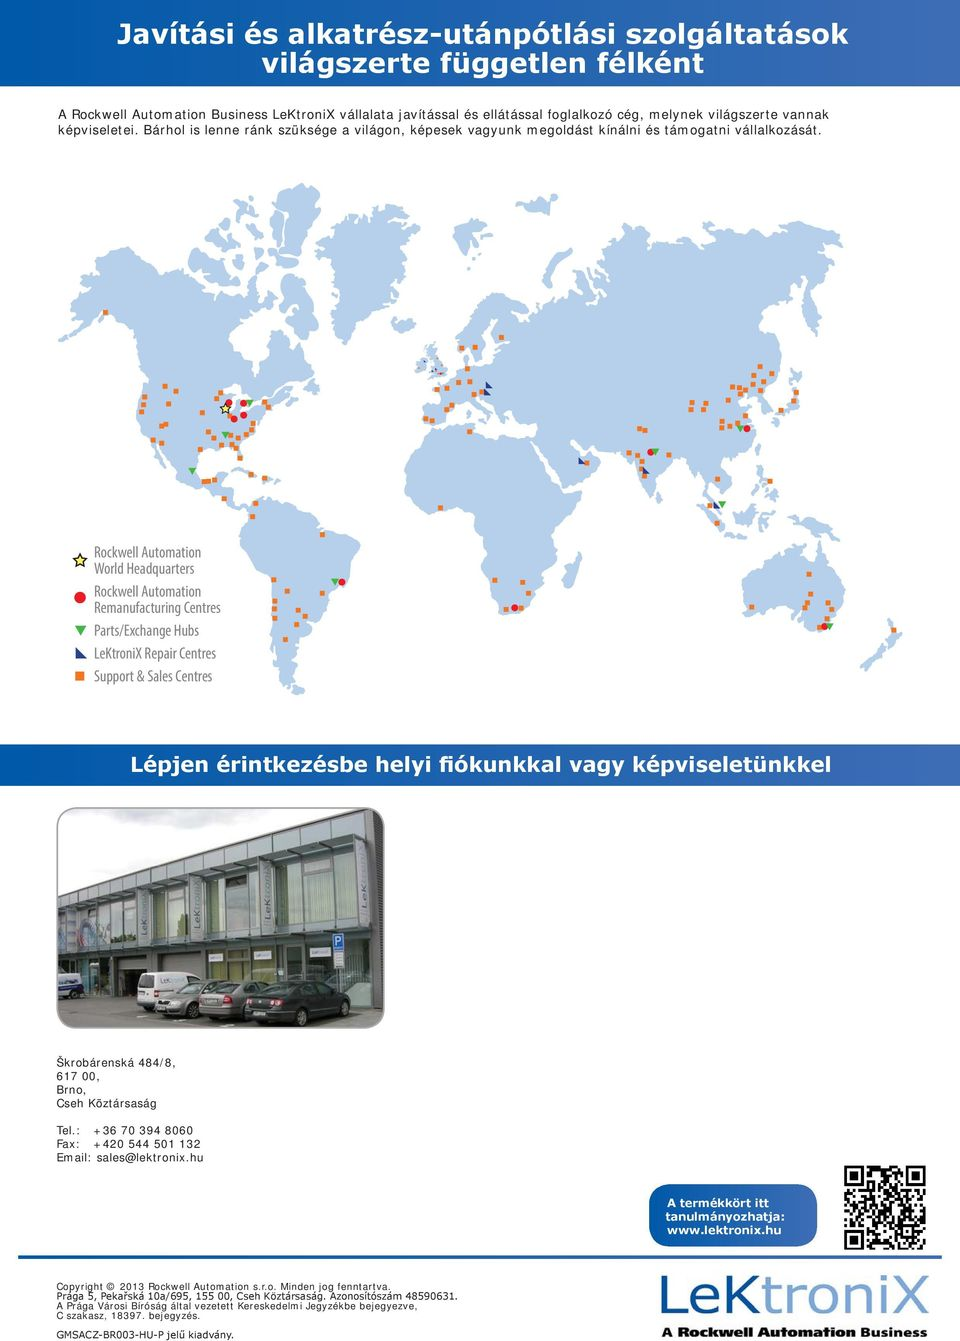 Rockwell Automation World Headquarters Rockwell Automation Remanufacturing Centres Parts/Exchange Hubs LeKtroniX Repair Centres Support & Sales Centres Lépjen érintkezésbe helyi fiókunkkal vagy